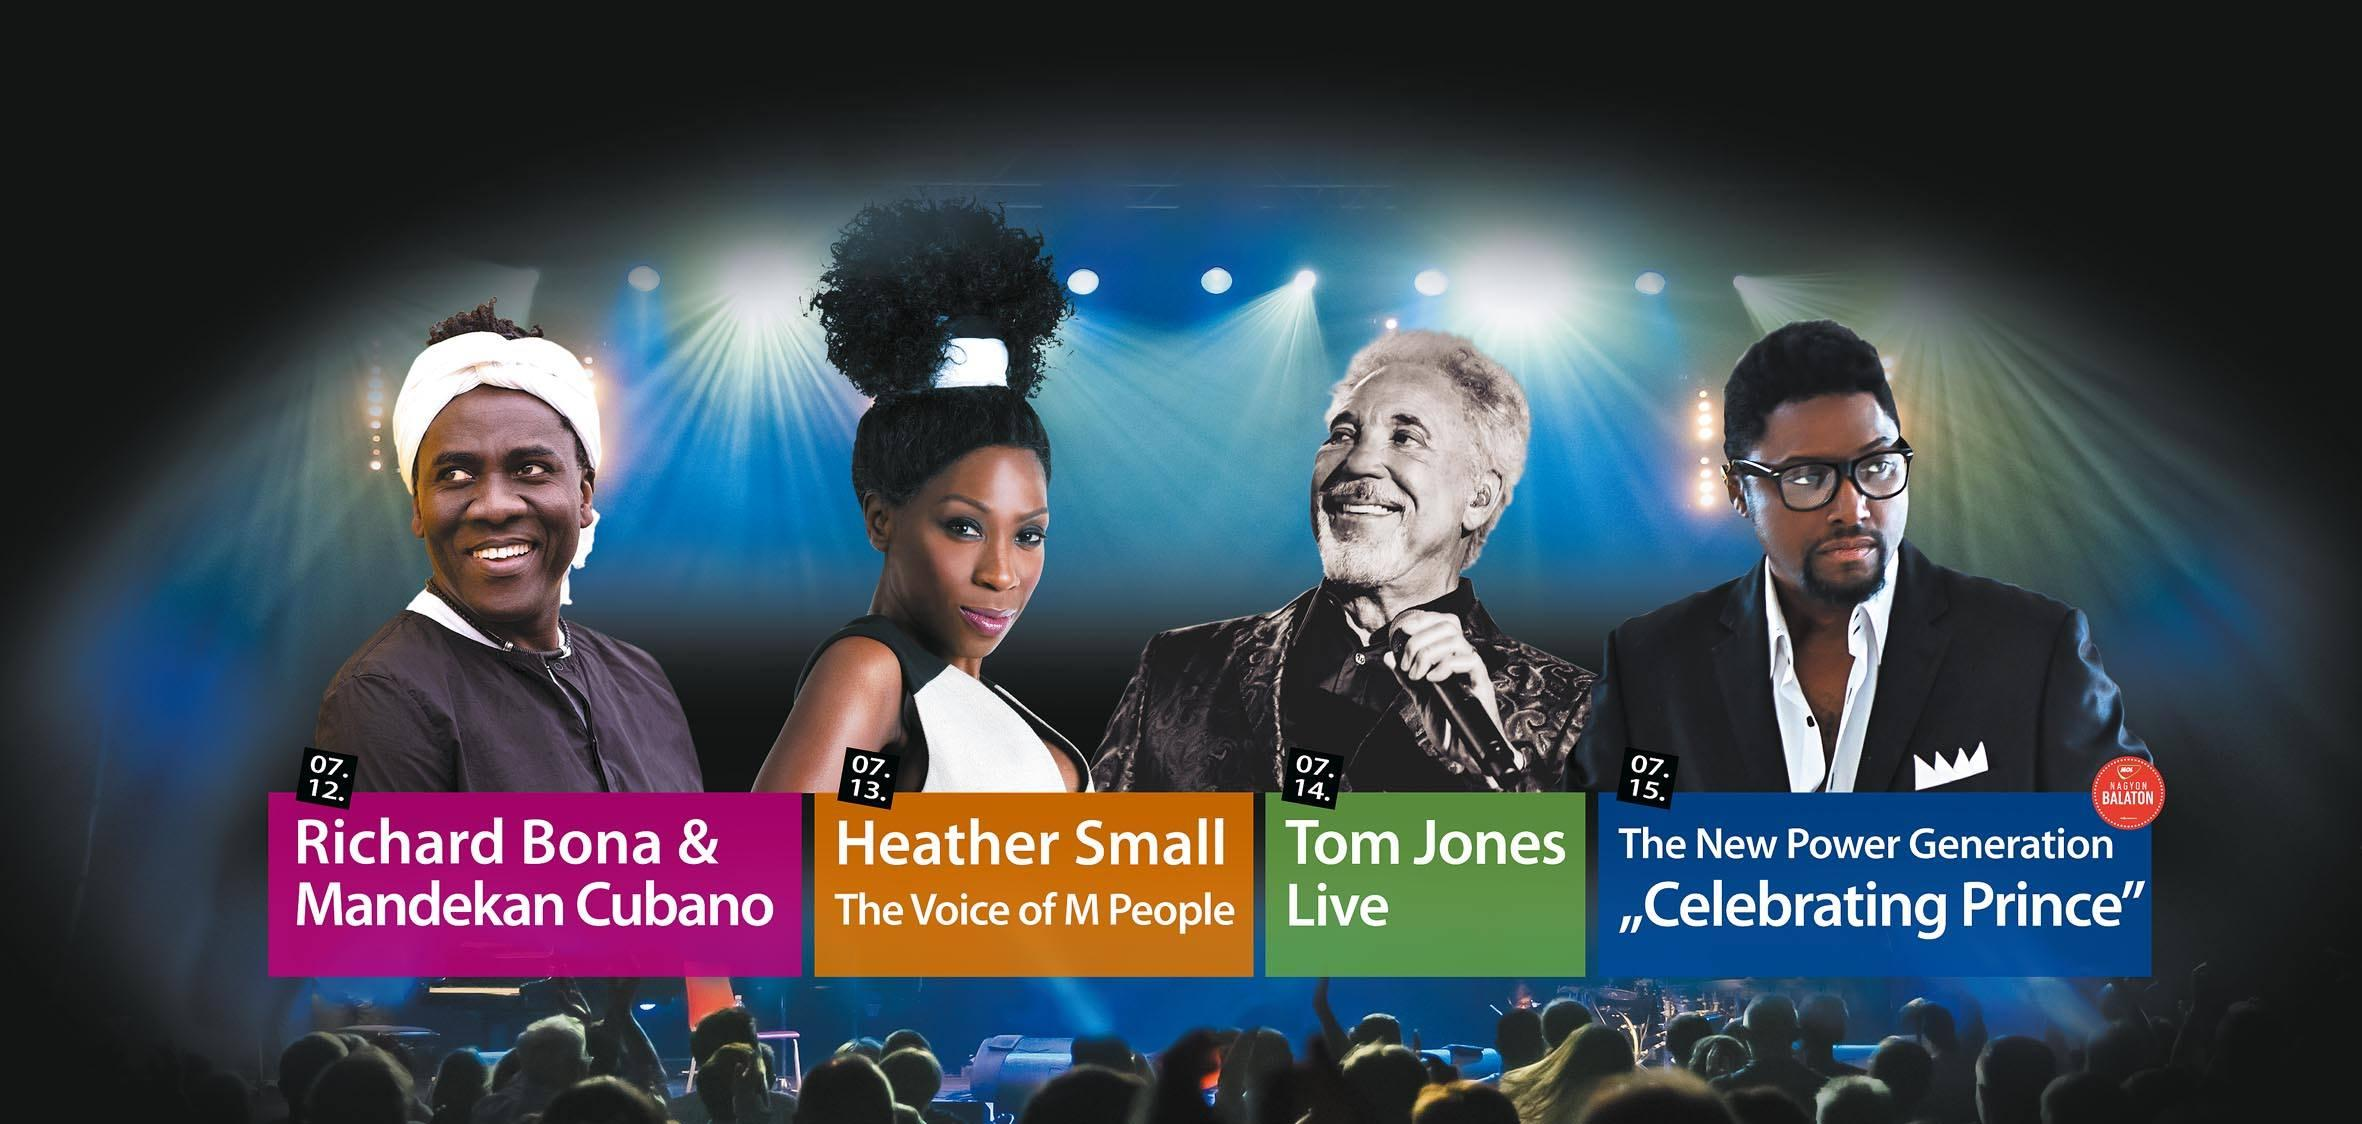 'VeszprémFest', Featuring Tom Jones & The NPG, 12 - 15 July